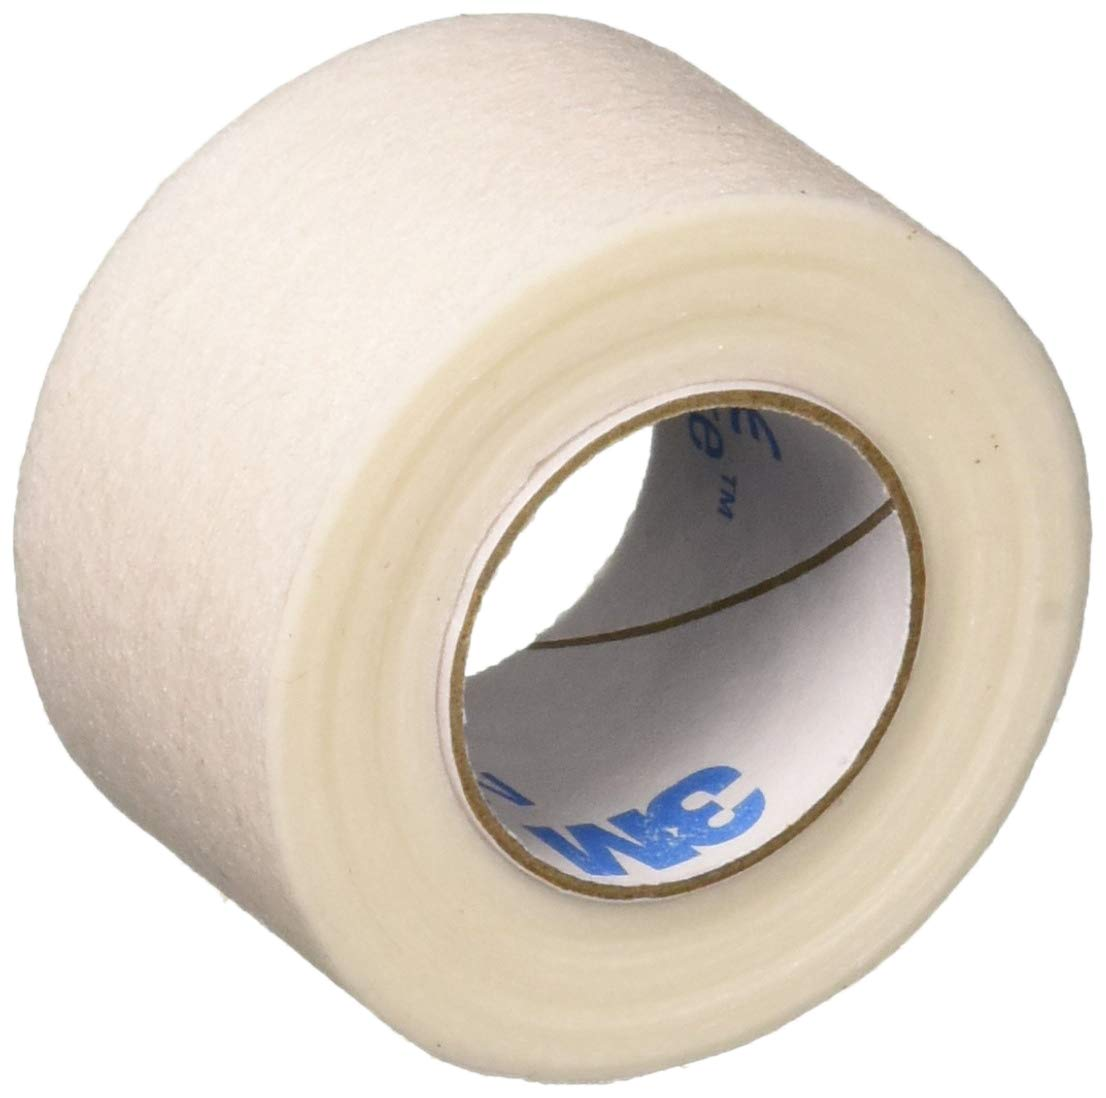 "3M Micropore Paper Tape - White, 1"" x 10yds (Box of 12)"